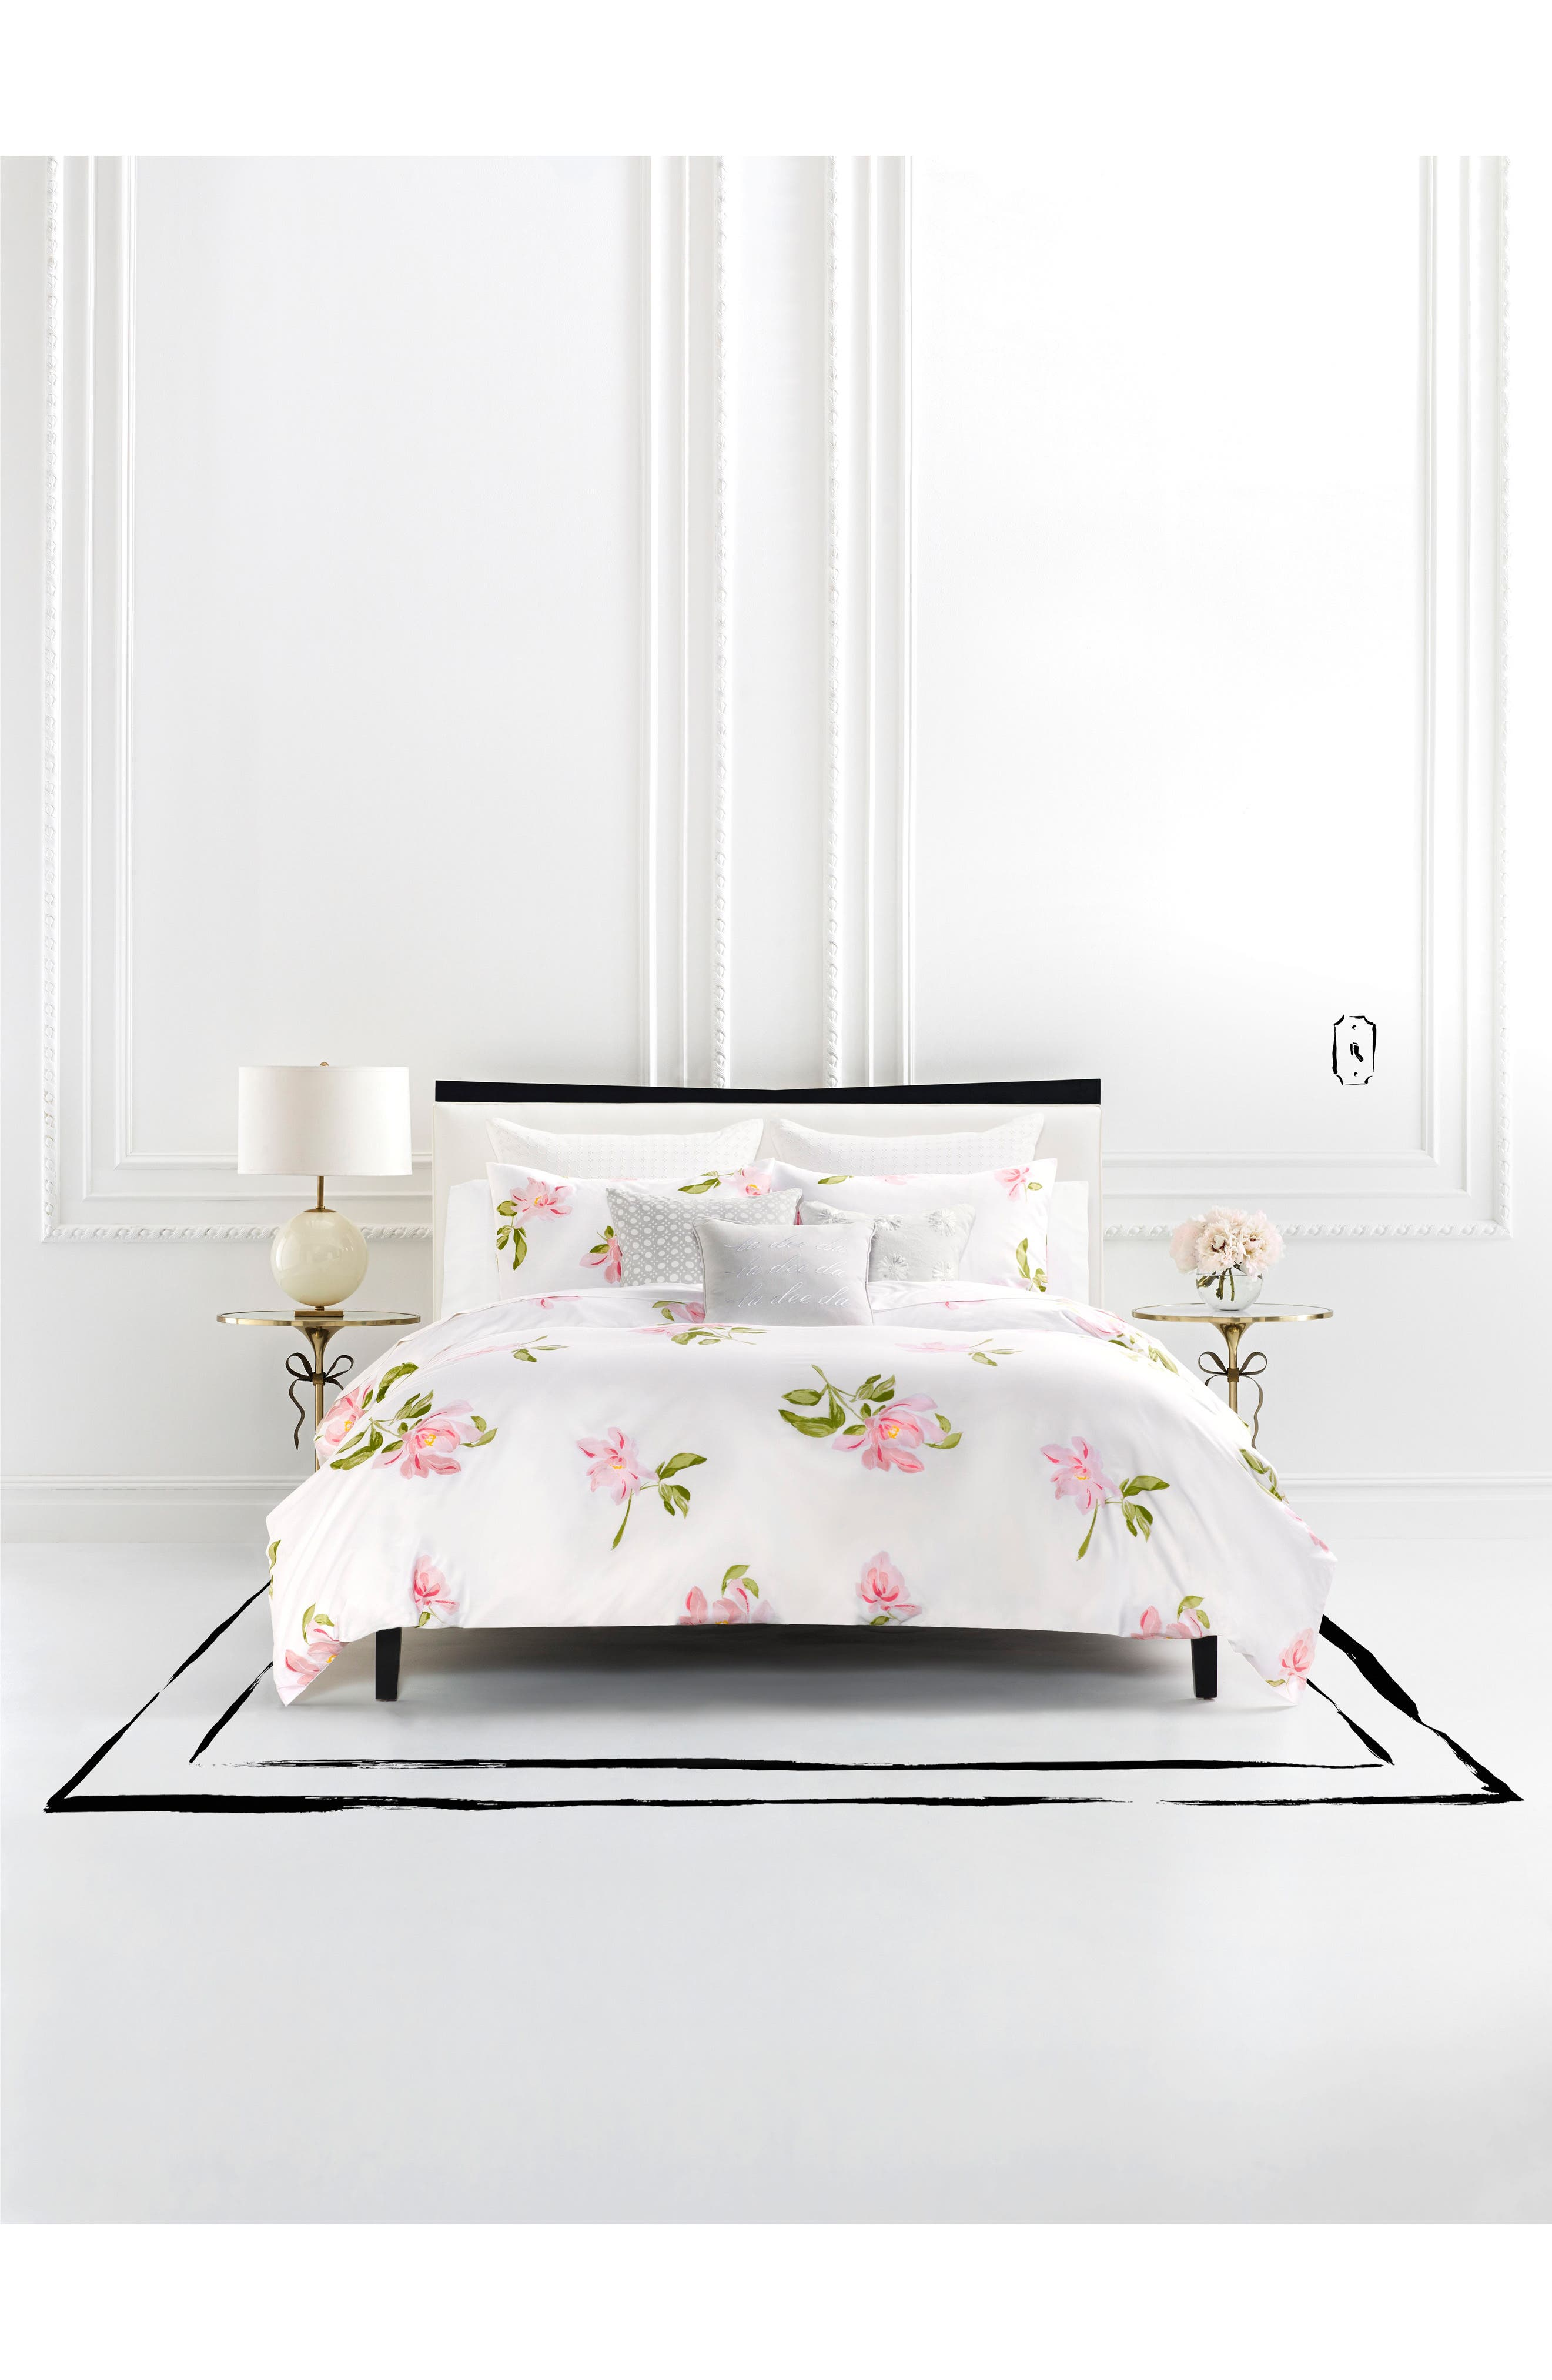 breezy magnolia duvet cover & sham set,                             Main thumbnail 1, color,                             WHITE